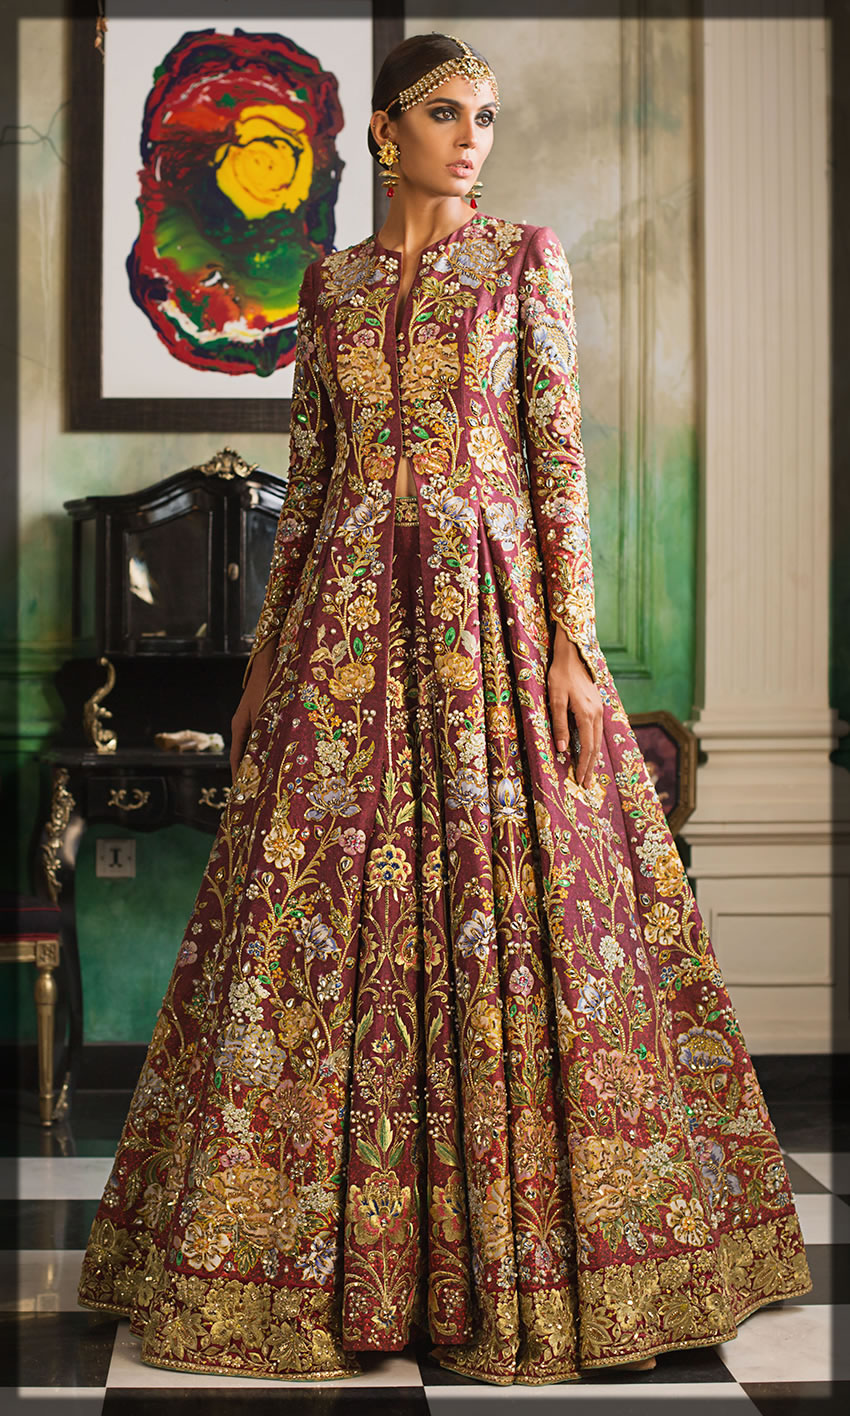 luxurious bride dress for barat day